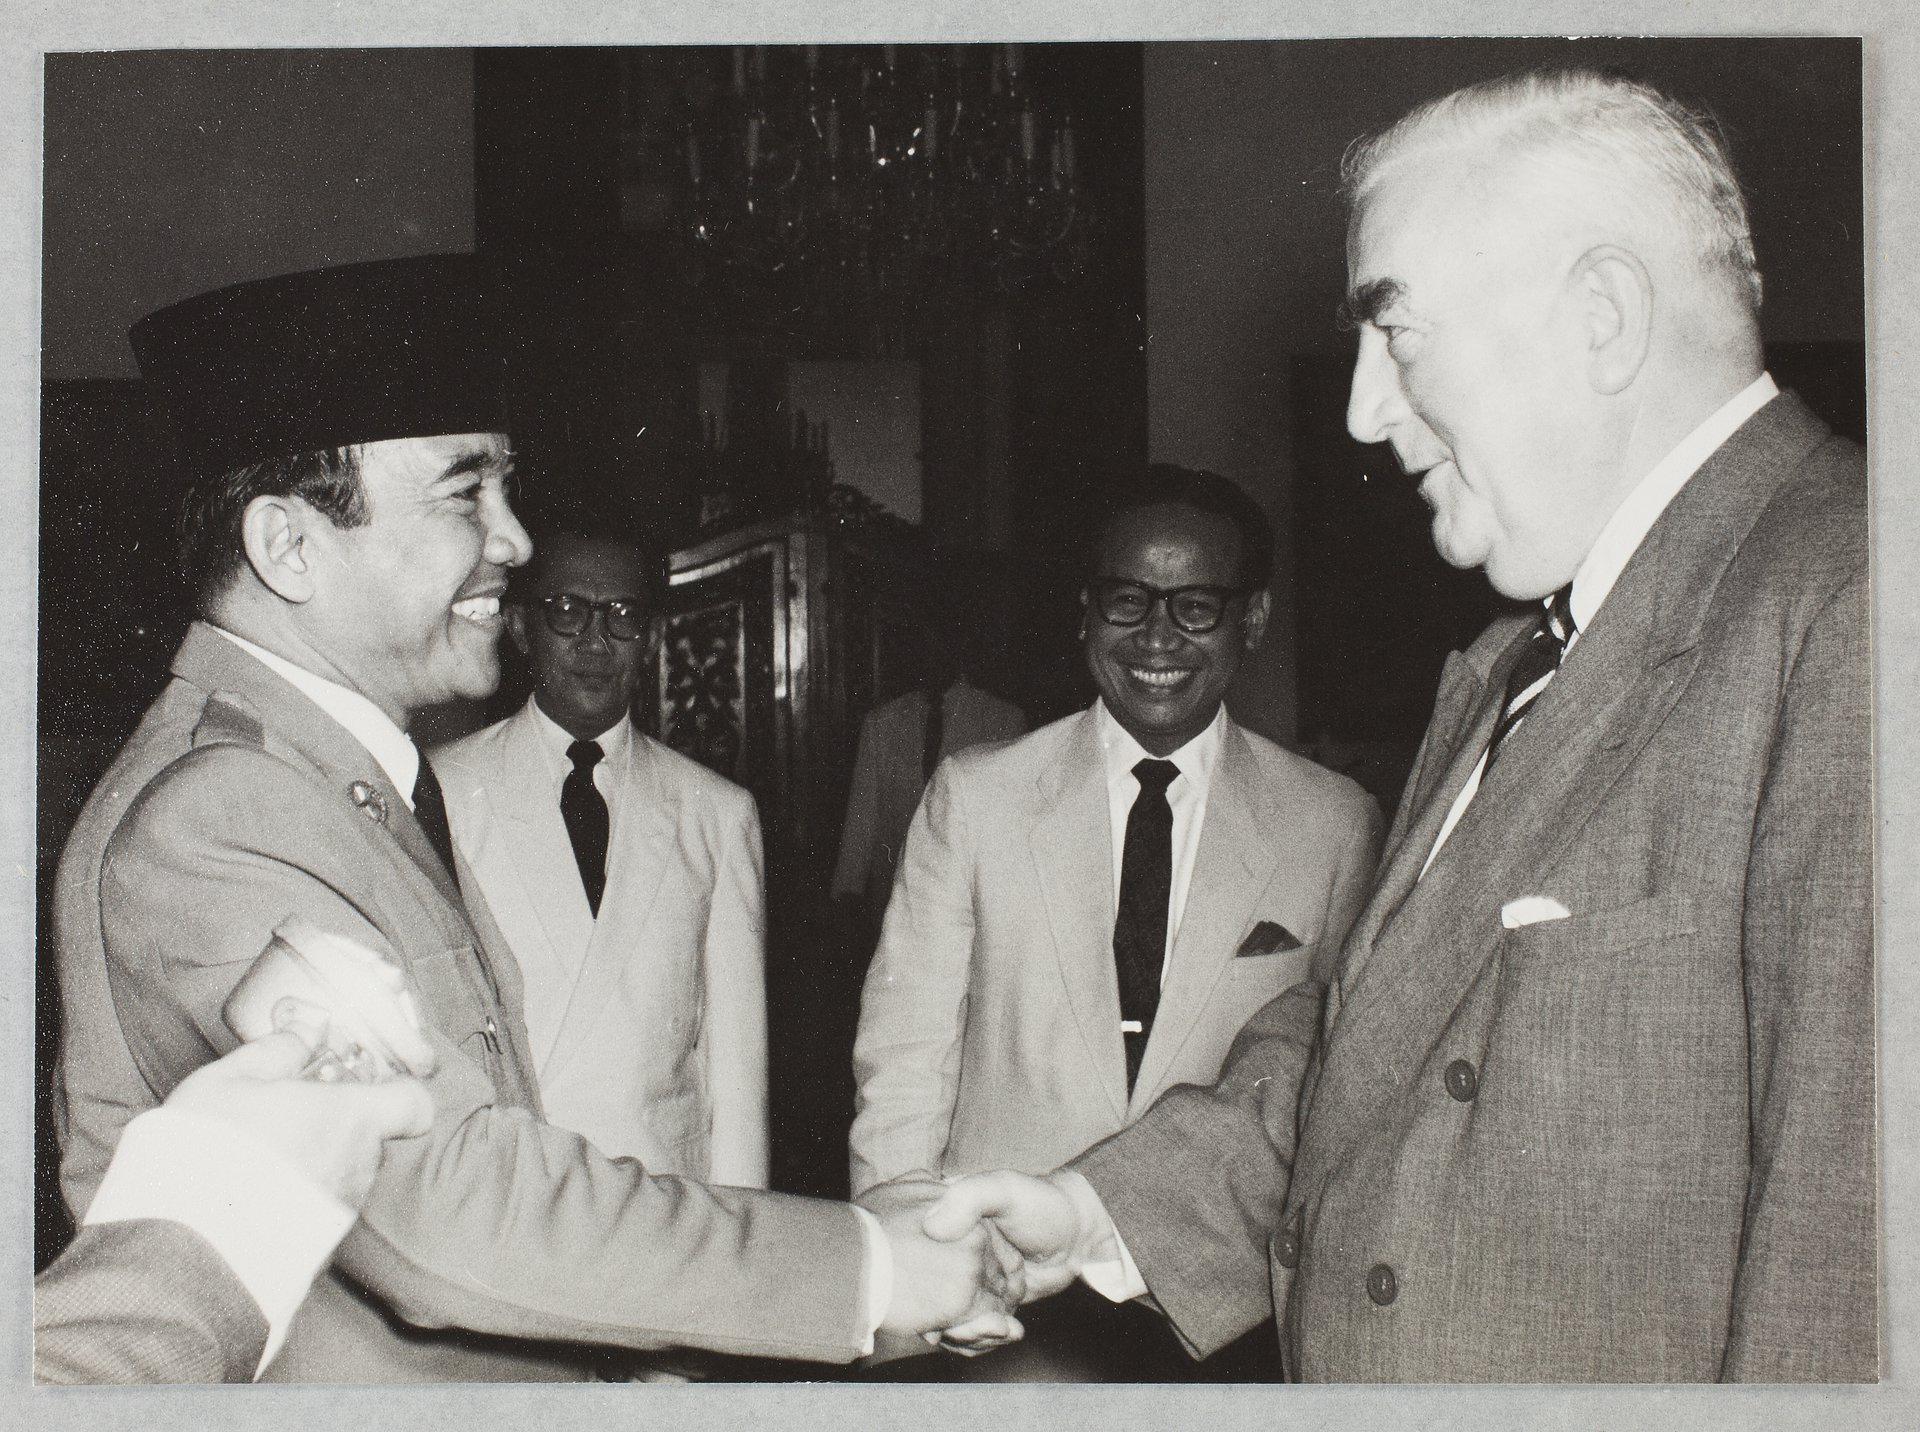 President Sukarno of Indonesia shaking hands with Robert Menzies during Menzies' visit to Indonesia in 1959